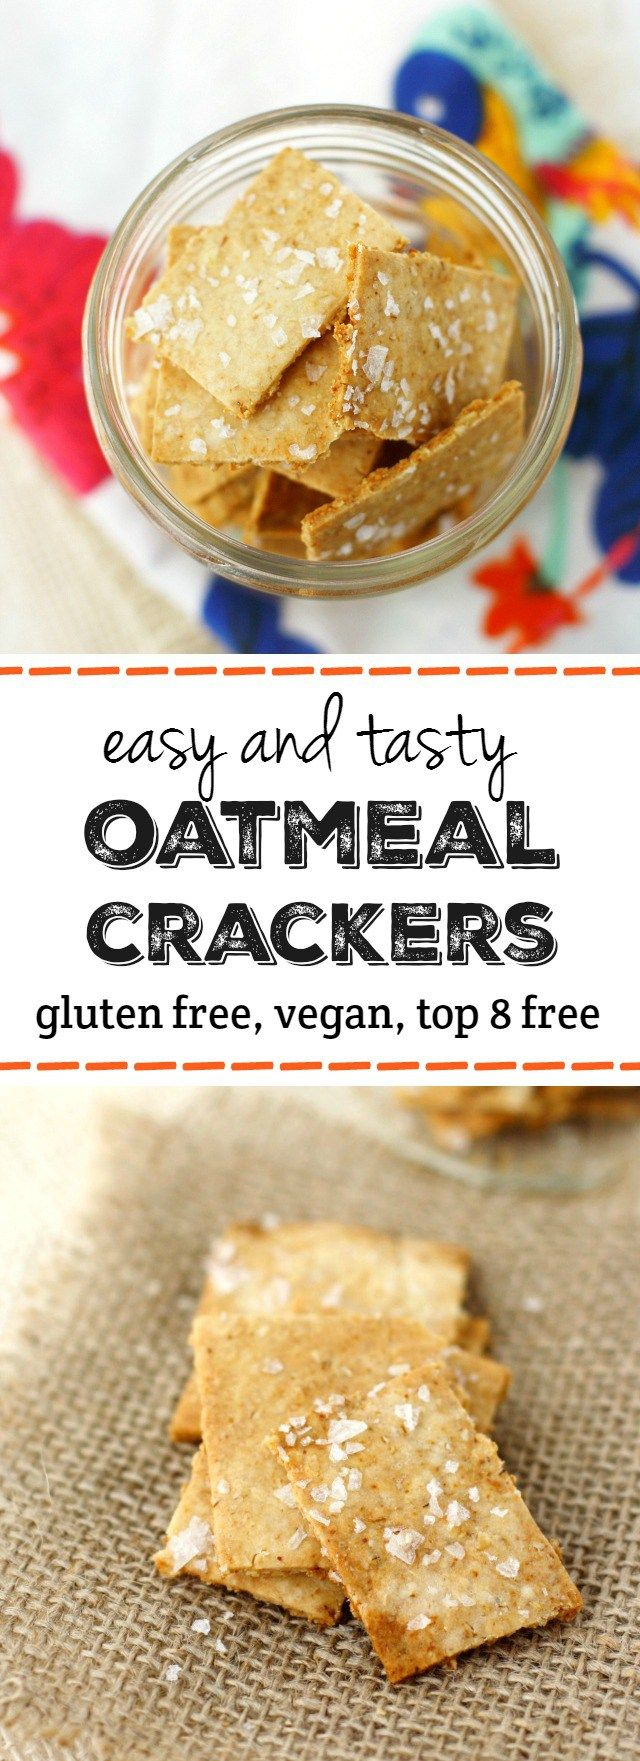 Easy and delicious crispy, crunchy gluten free cracker recipe. This recipe is so tasty, and much cheaper than store bought crackers!